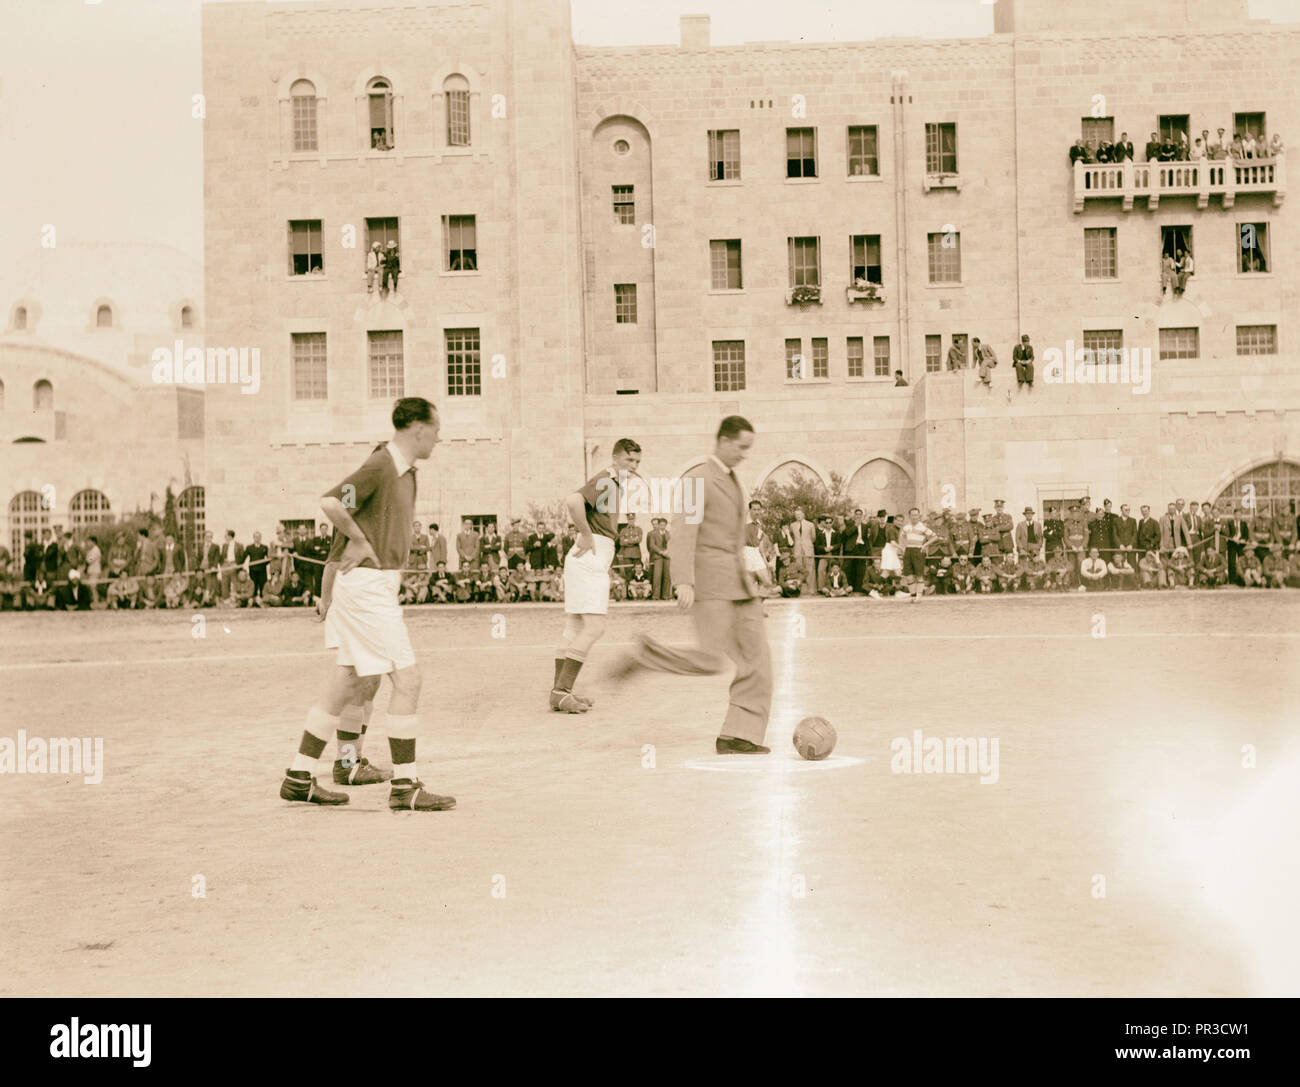 Football game 'Y' versus British Army. Mr. Macphearson, chief secretary 'kicking off' the ball, Middle East - Stock Image